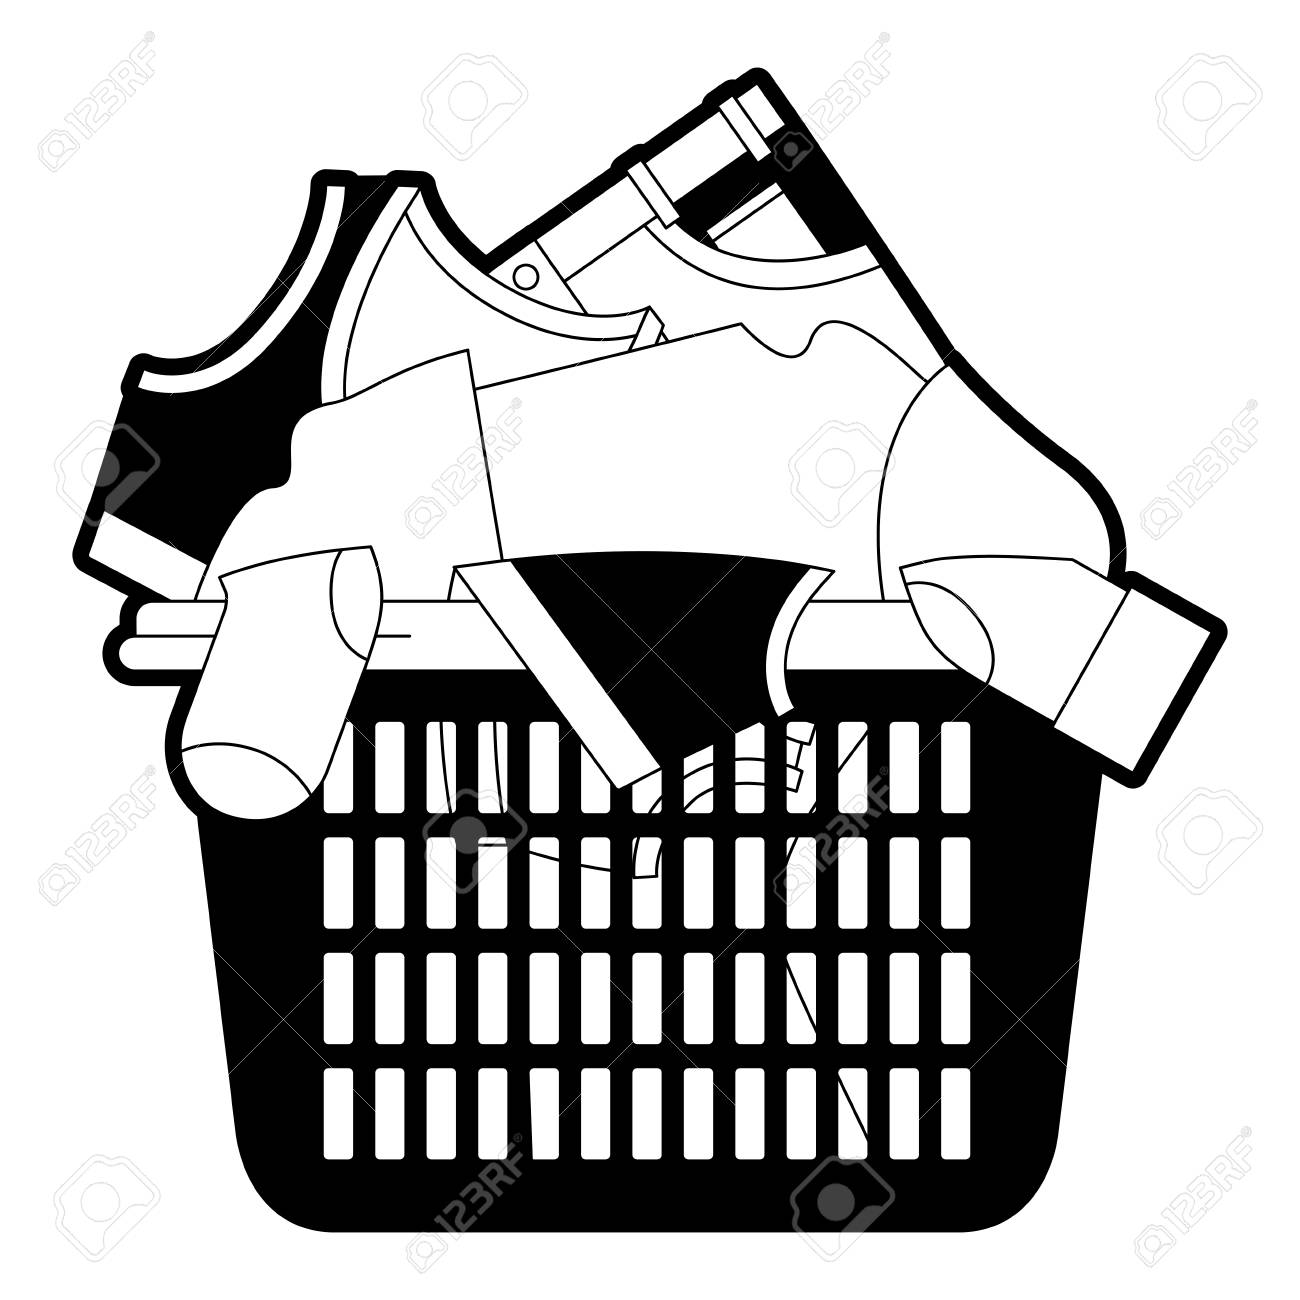 hight resolution of black sections silhouette of laundry basket with heap of clothes vector illustration stock vector jpg 1300x1300